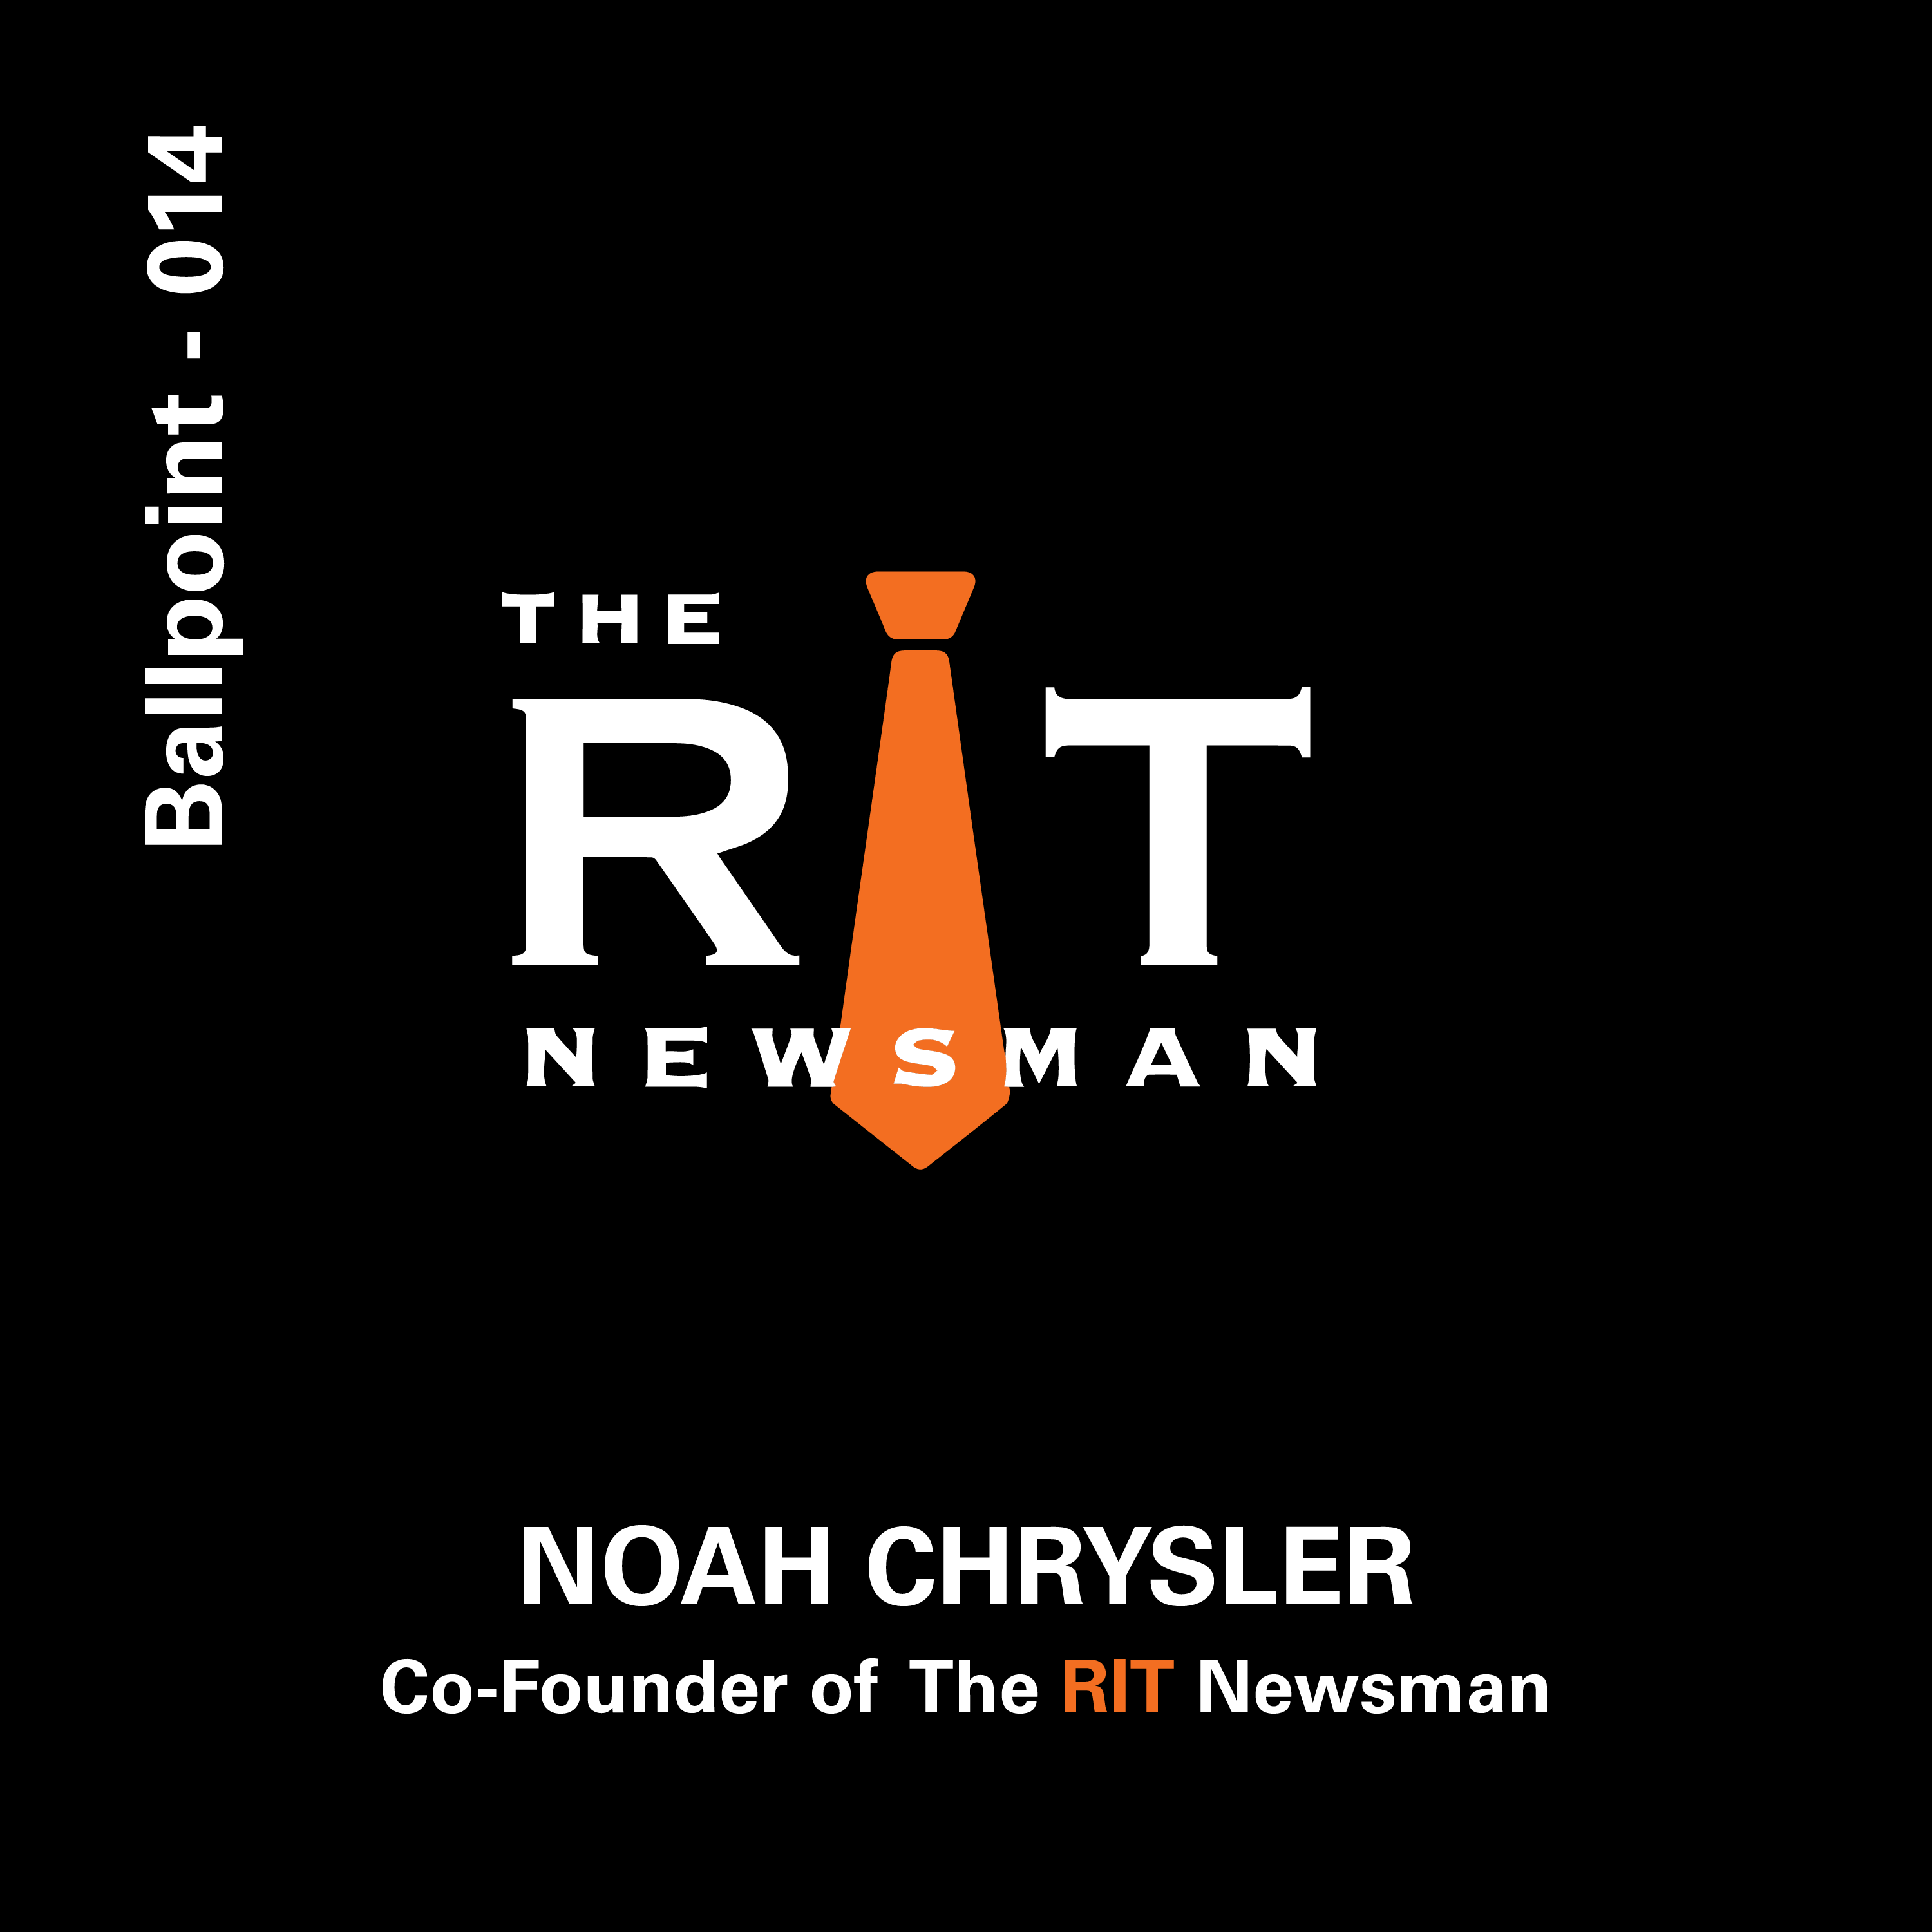 014 - Noah Chrysler, The RIT Newsman